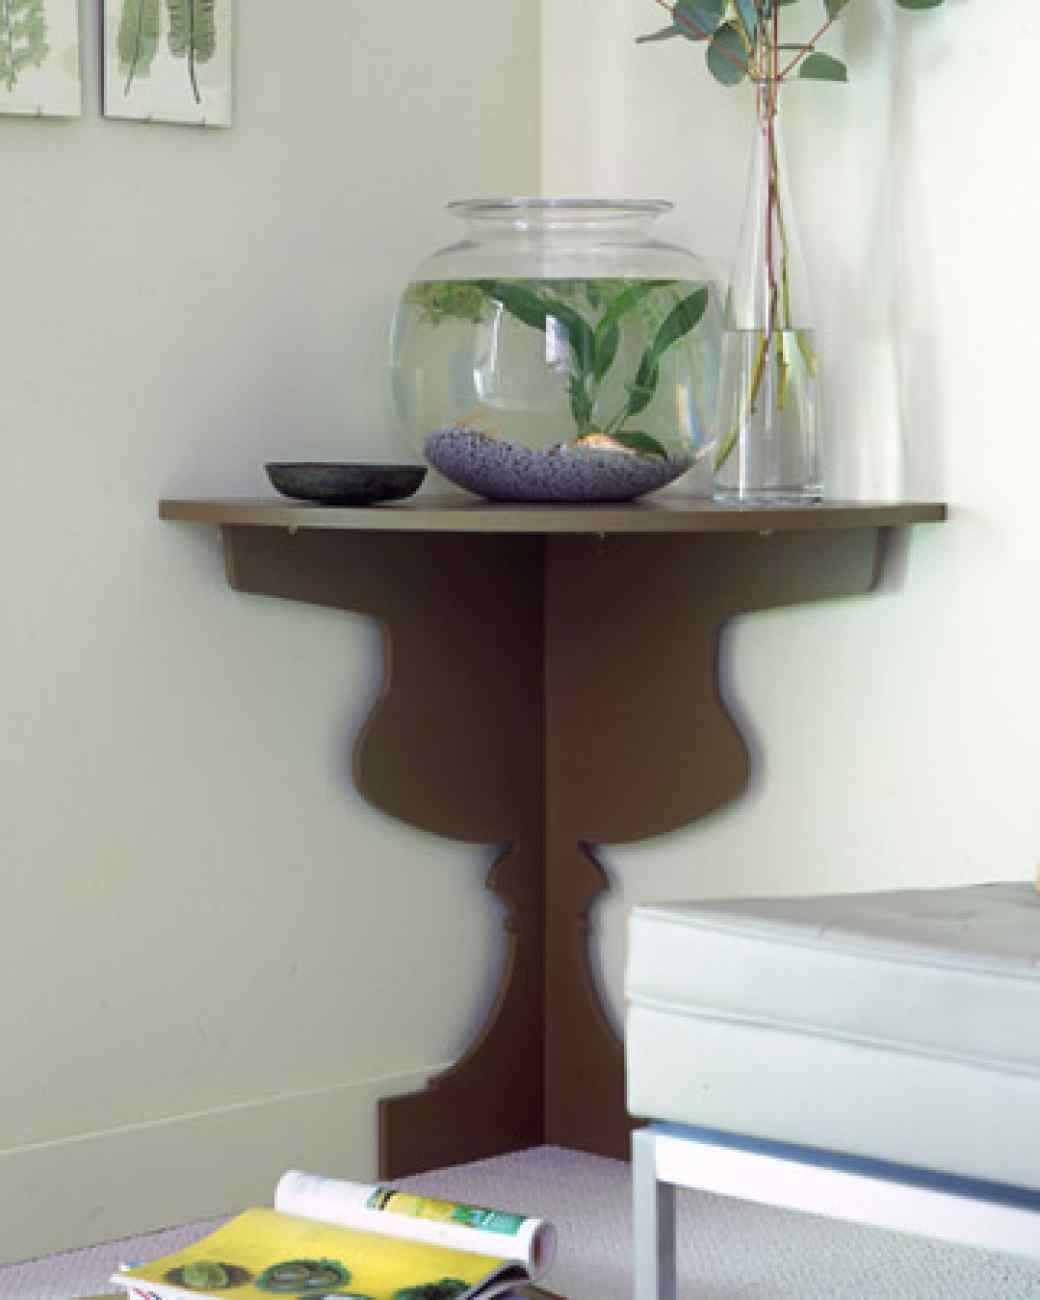 Fullsize Of Corner Shelf Hanging